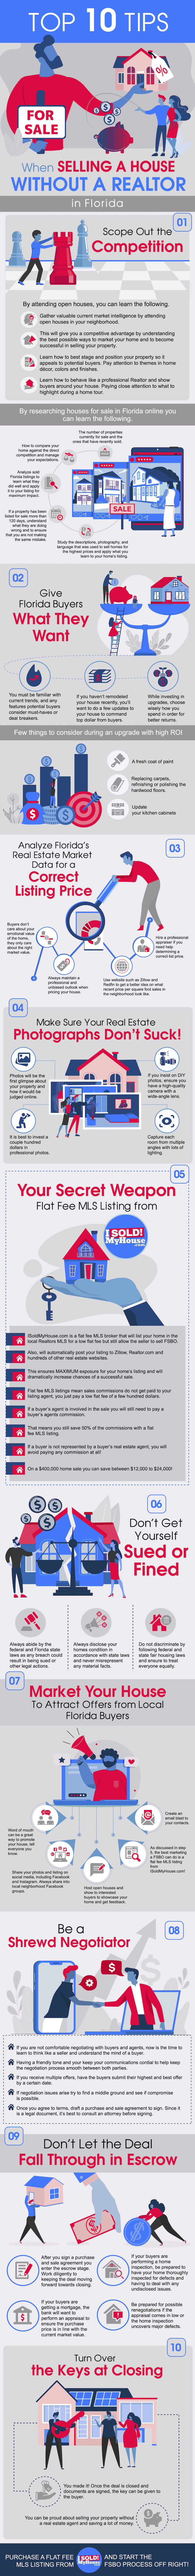 infographic of the 10 steps to sell a house in florida without an agent